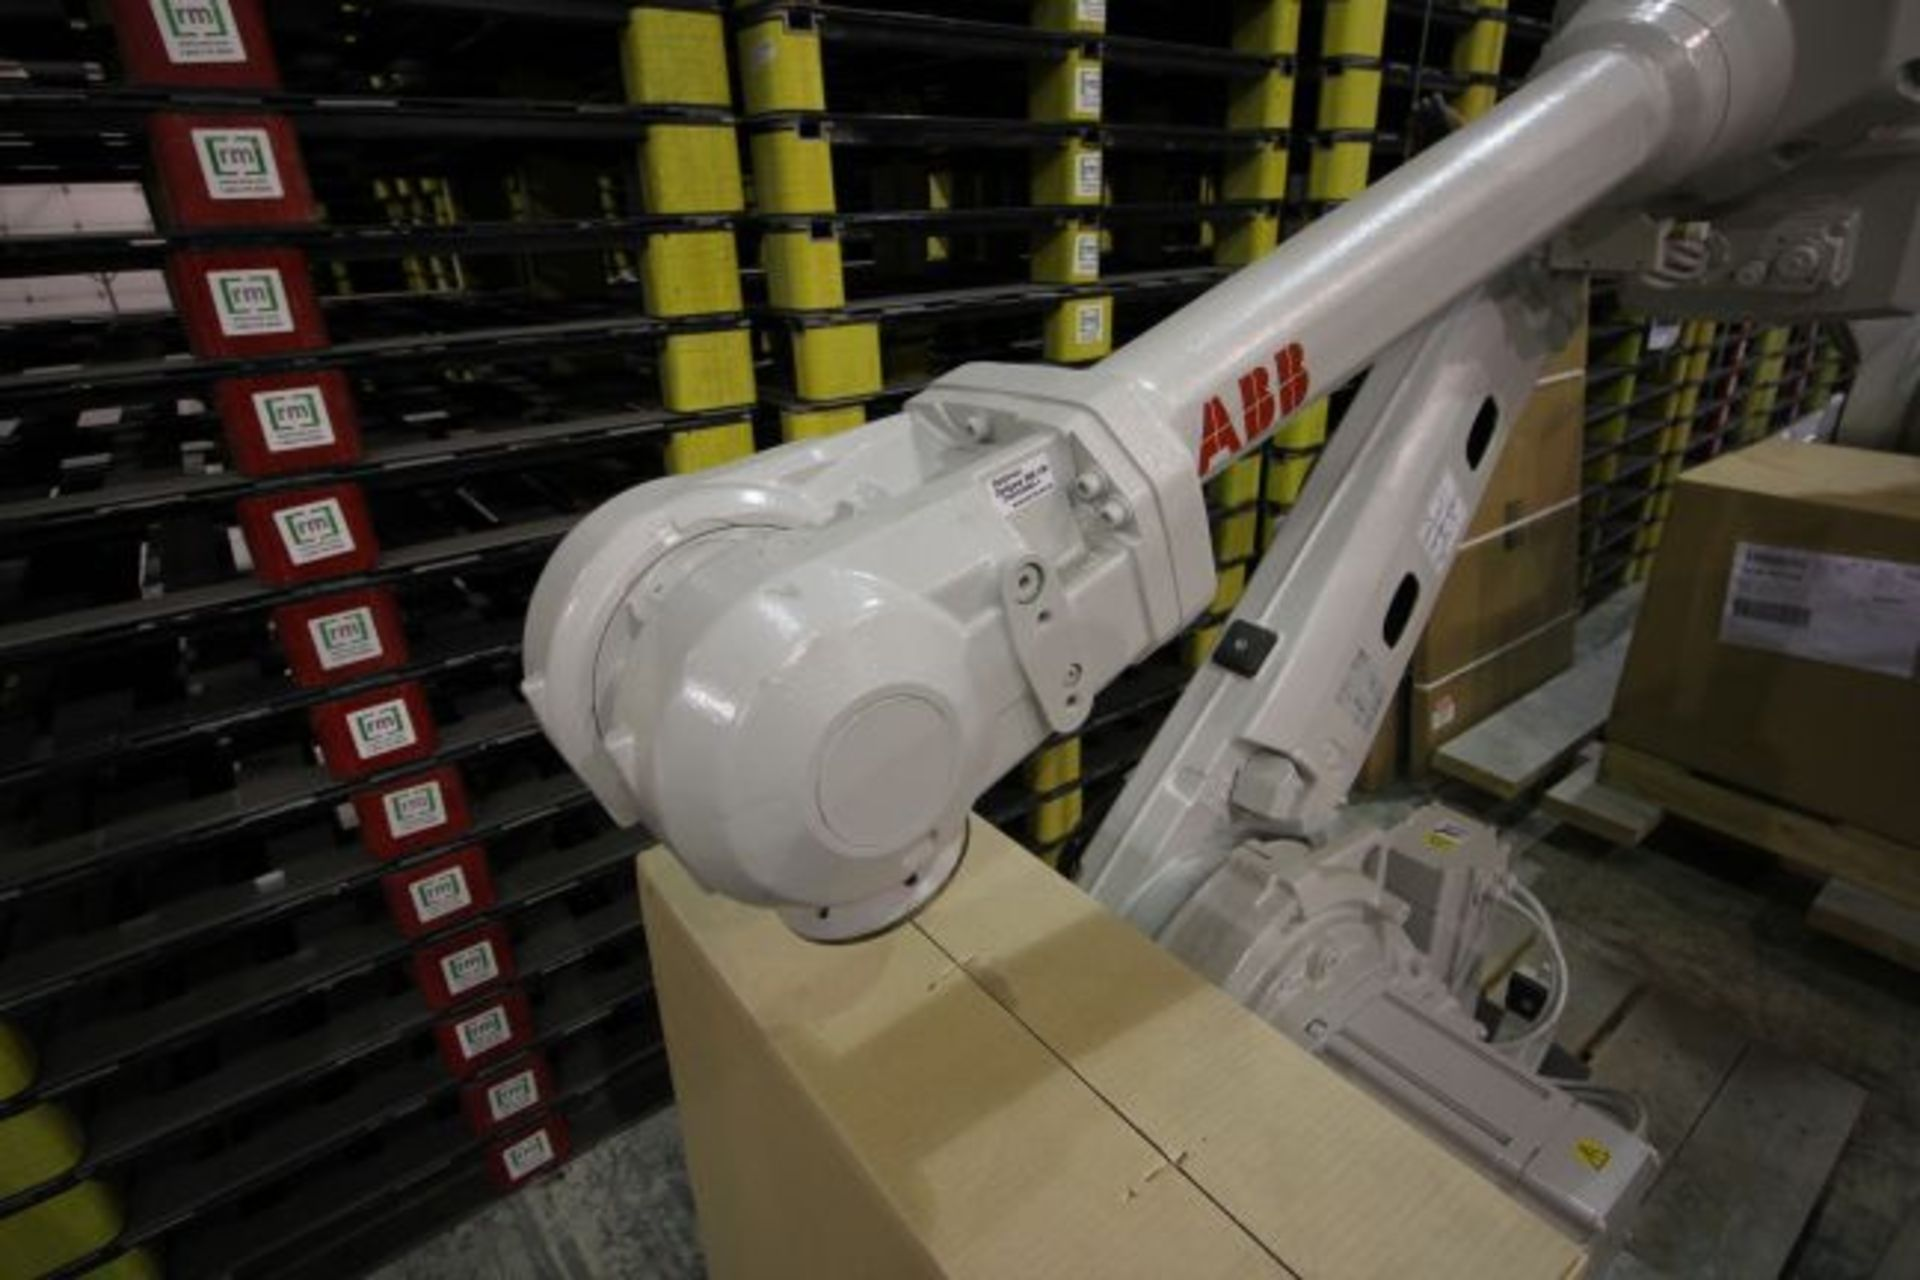 ABB ROBOT IRB 4600 2.55/40KG WITH IRC5 CONTROLS, YEAR 2015, 101896 TEACH PENDANT& CABLES - Image 3 of 11